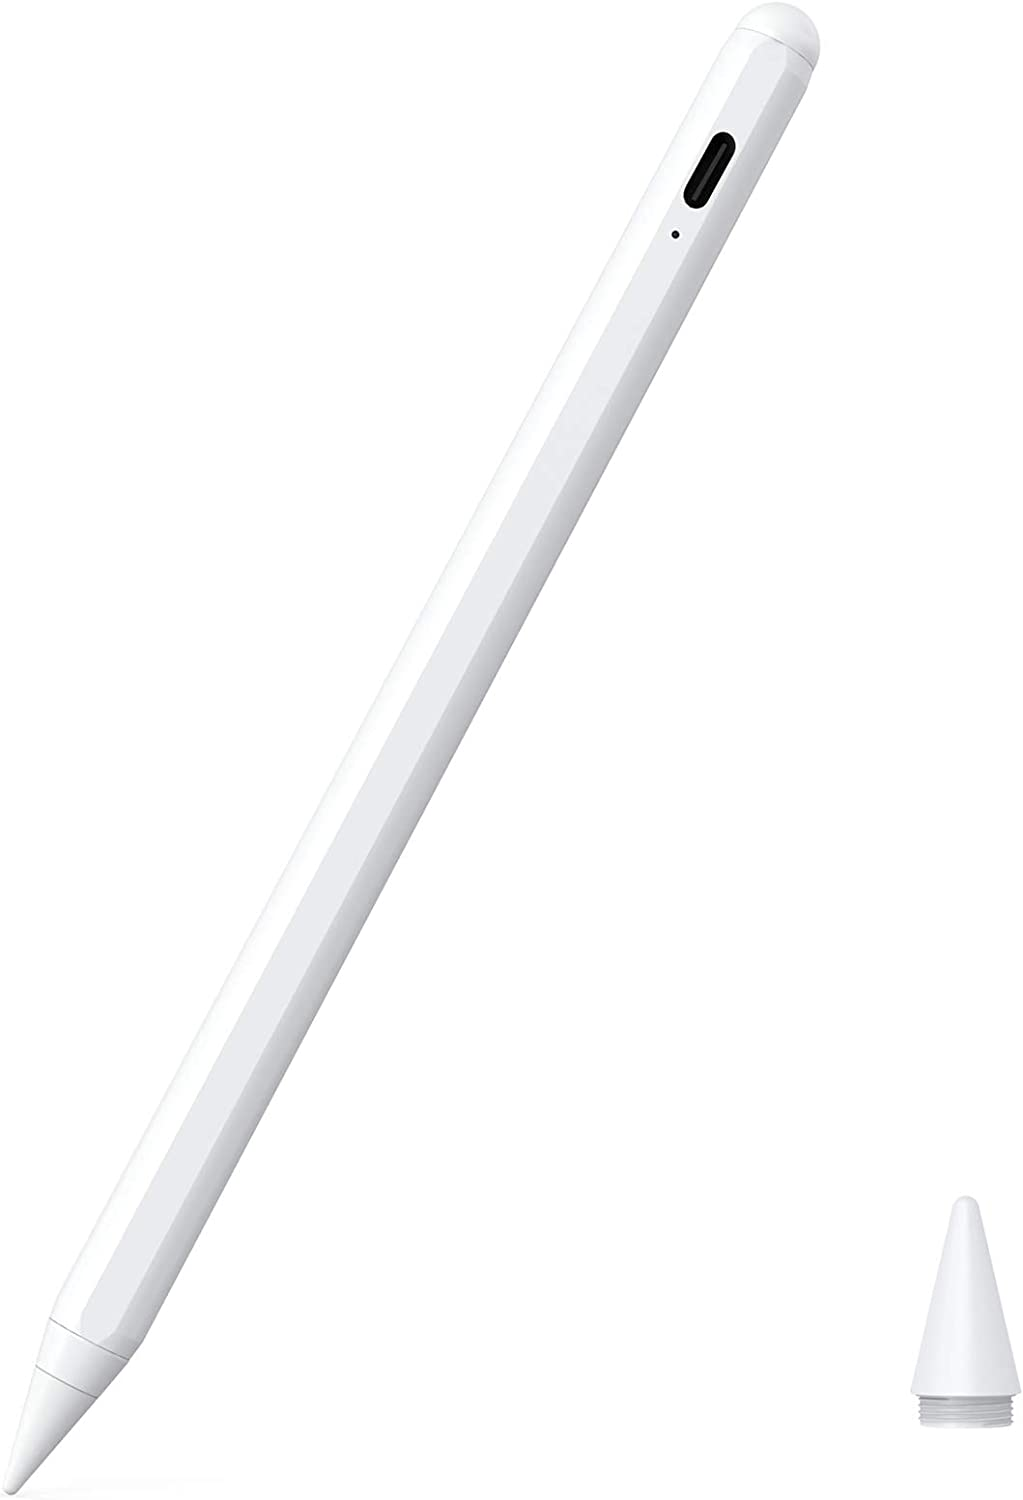 "Stylus Pen for iPad with Palm Rejection,KECOW 2nd Gen iPad Stylus Pen Compatible for(2018-2020) iPad 6/7th Gen,iPad Pro(11/12.9""),iPad Mini 5th Gen, iPad Air 3rd Gen,Precise for Writing/Drawing"